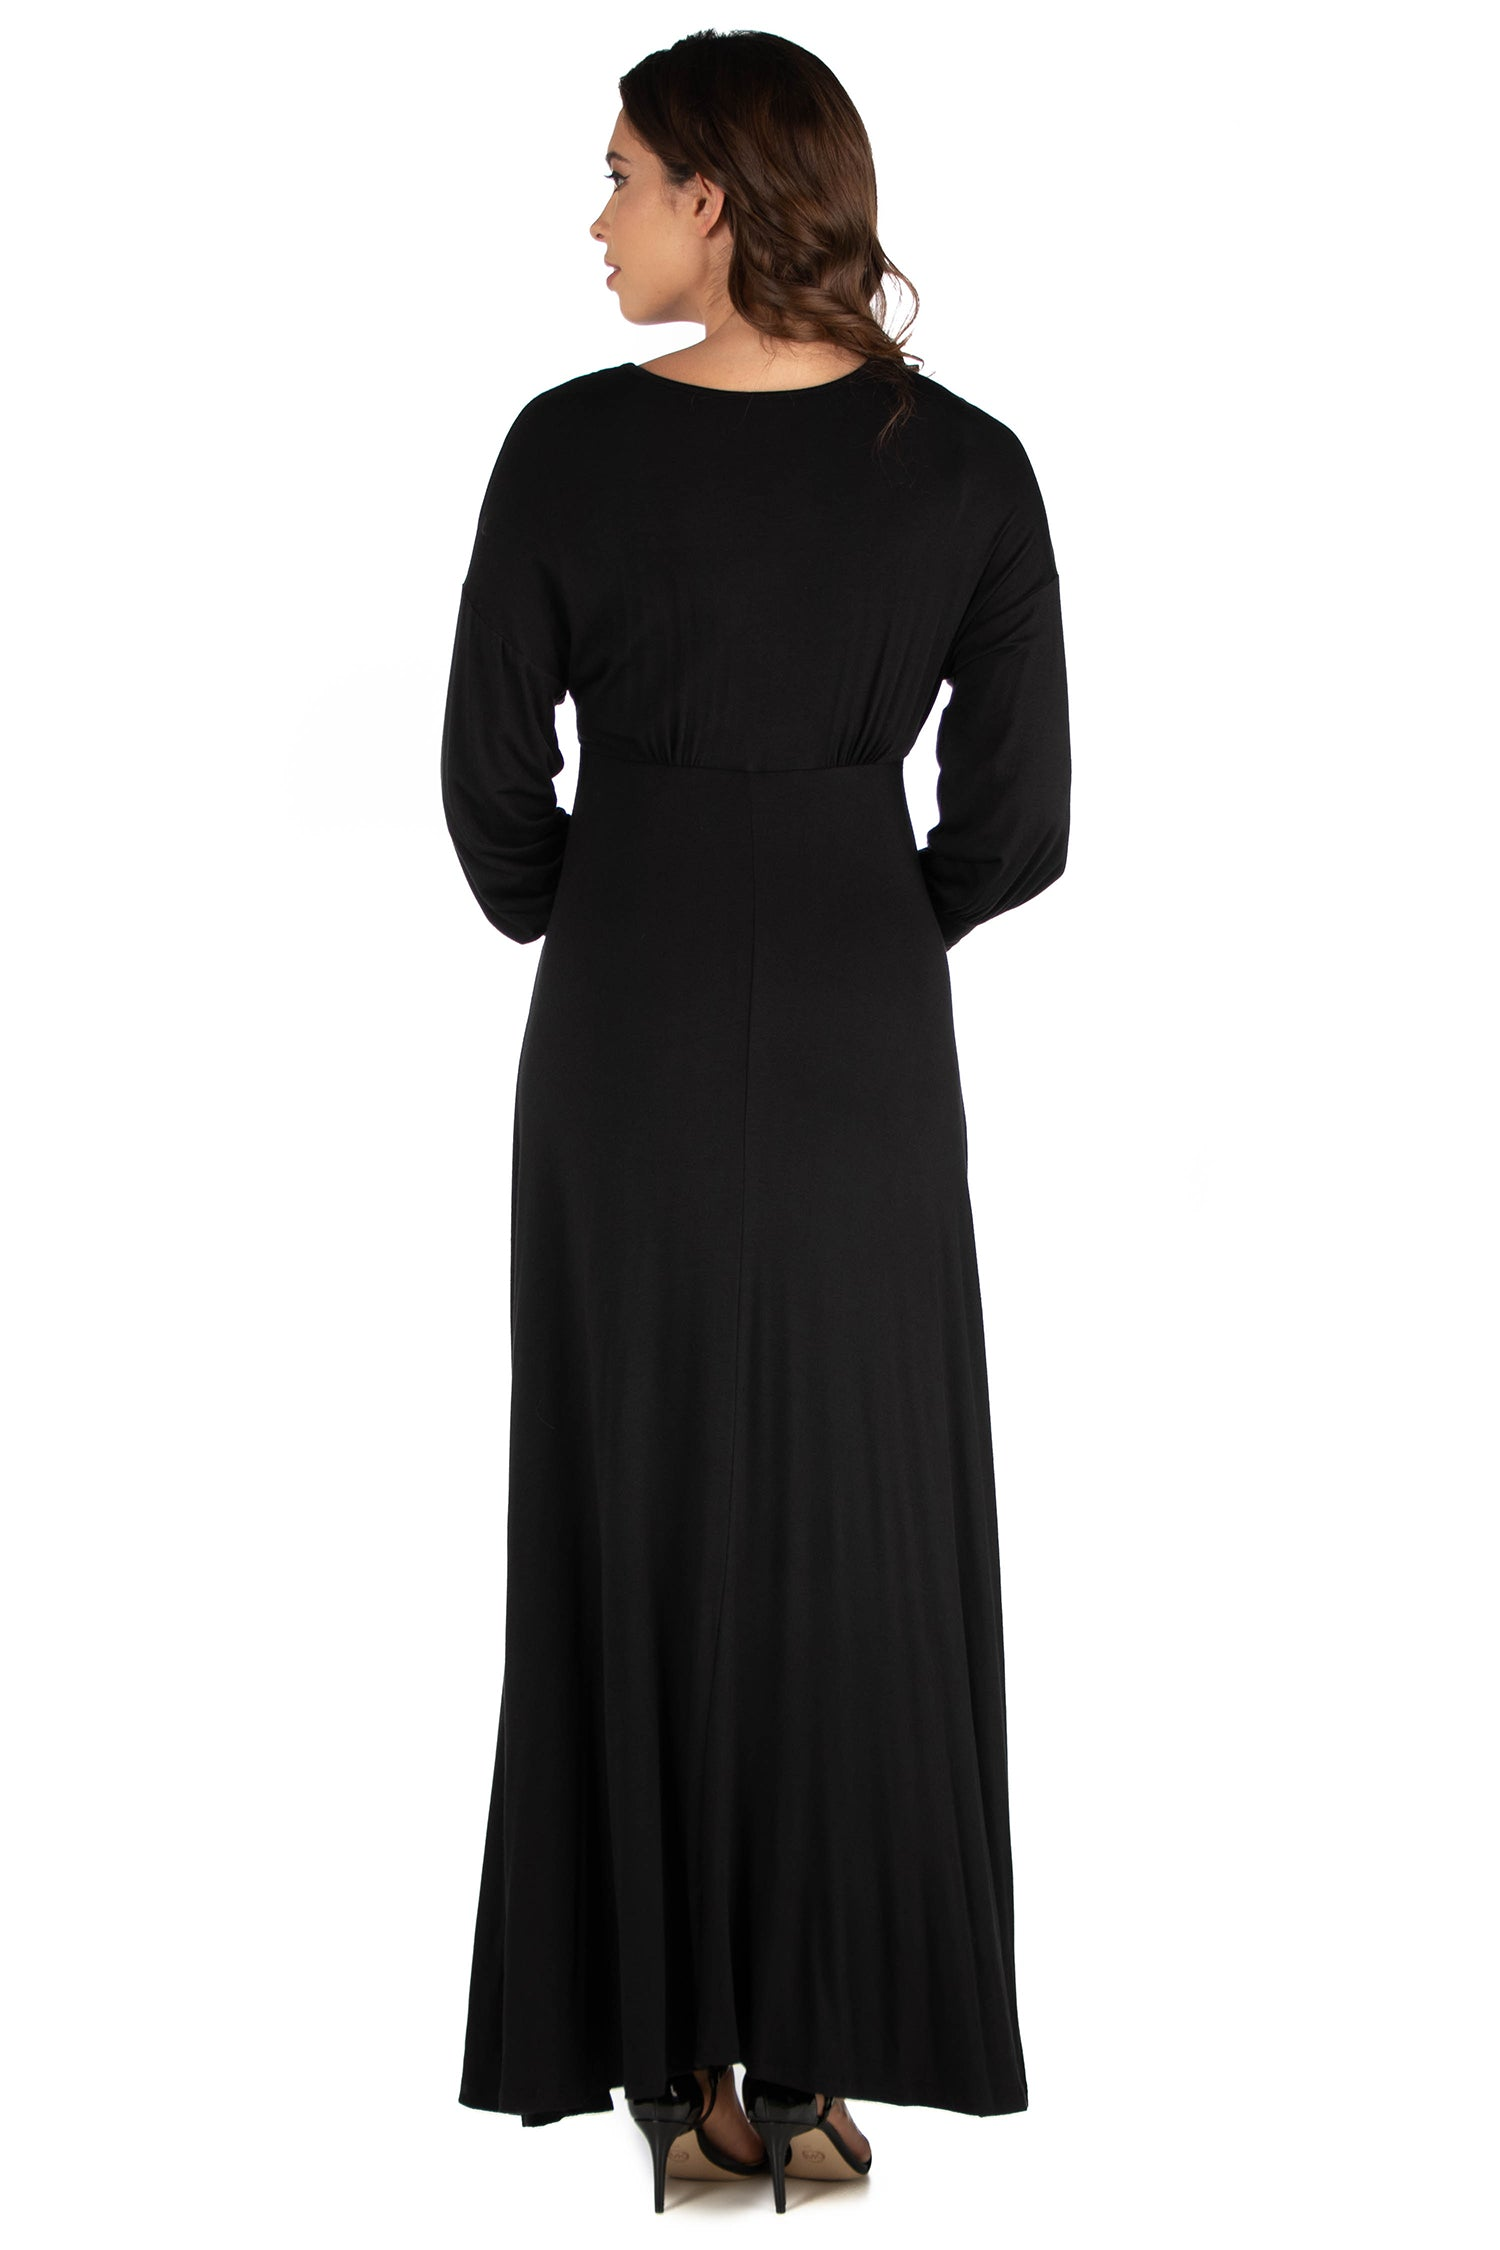 24seven Comfort Apparel V-Neck Long Sleeve Maternity Maxi Dress